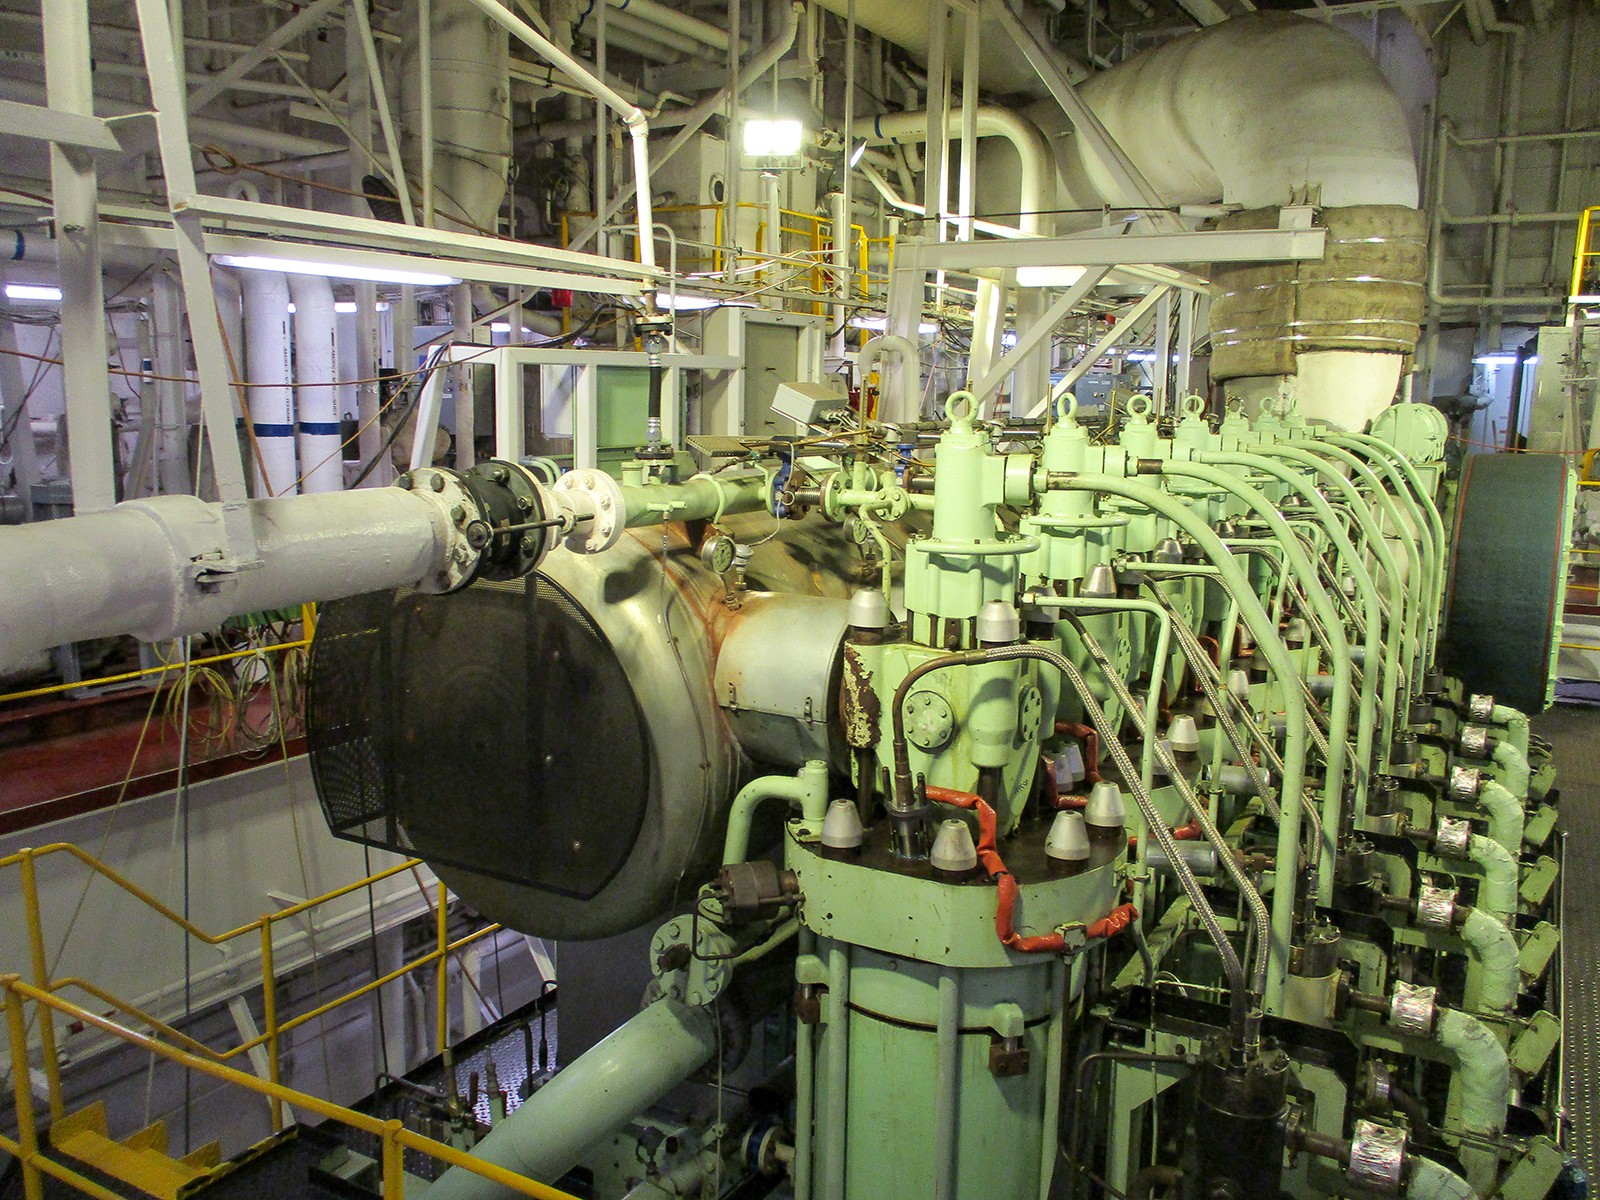 rows of pipes and machinery